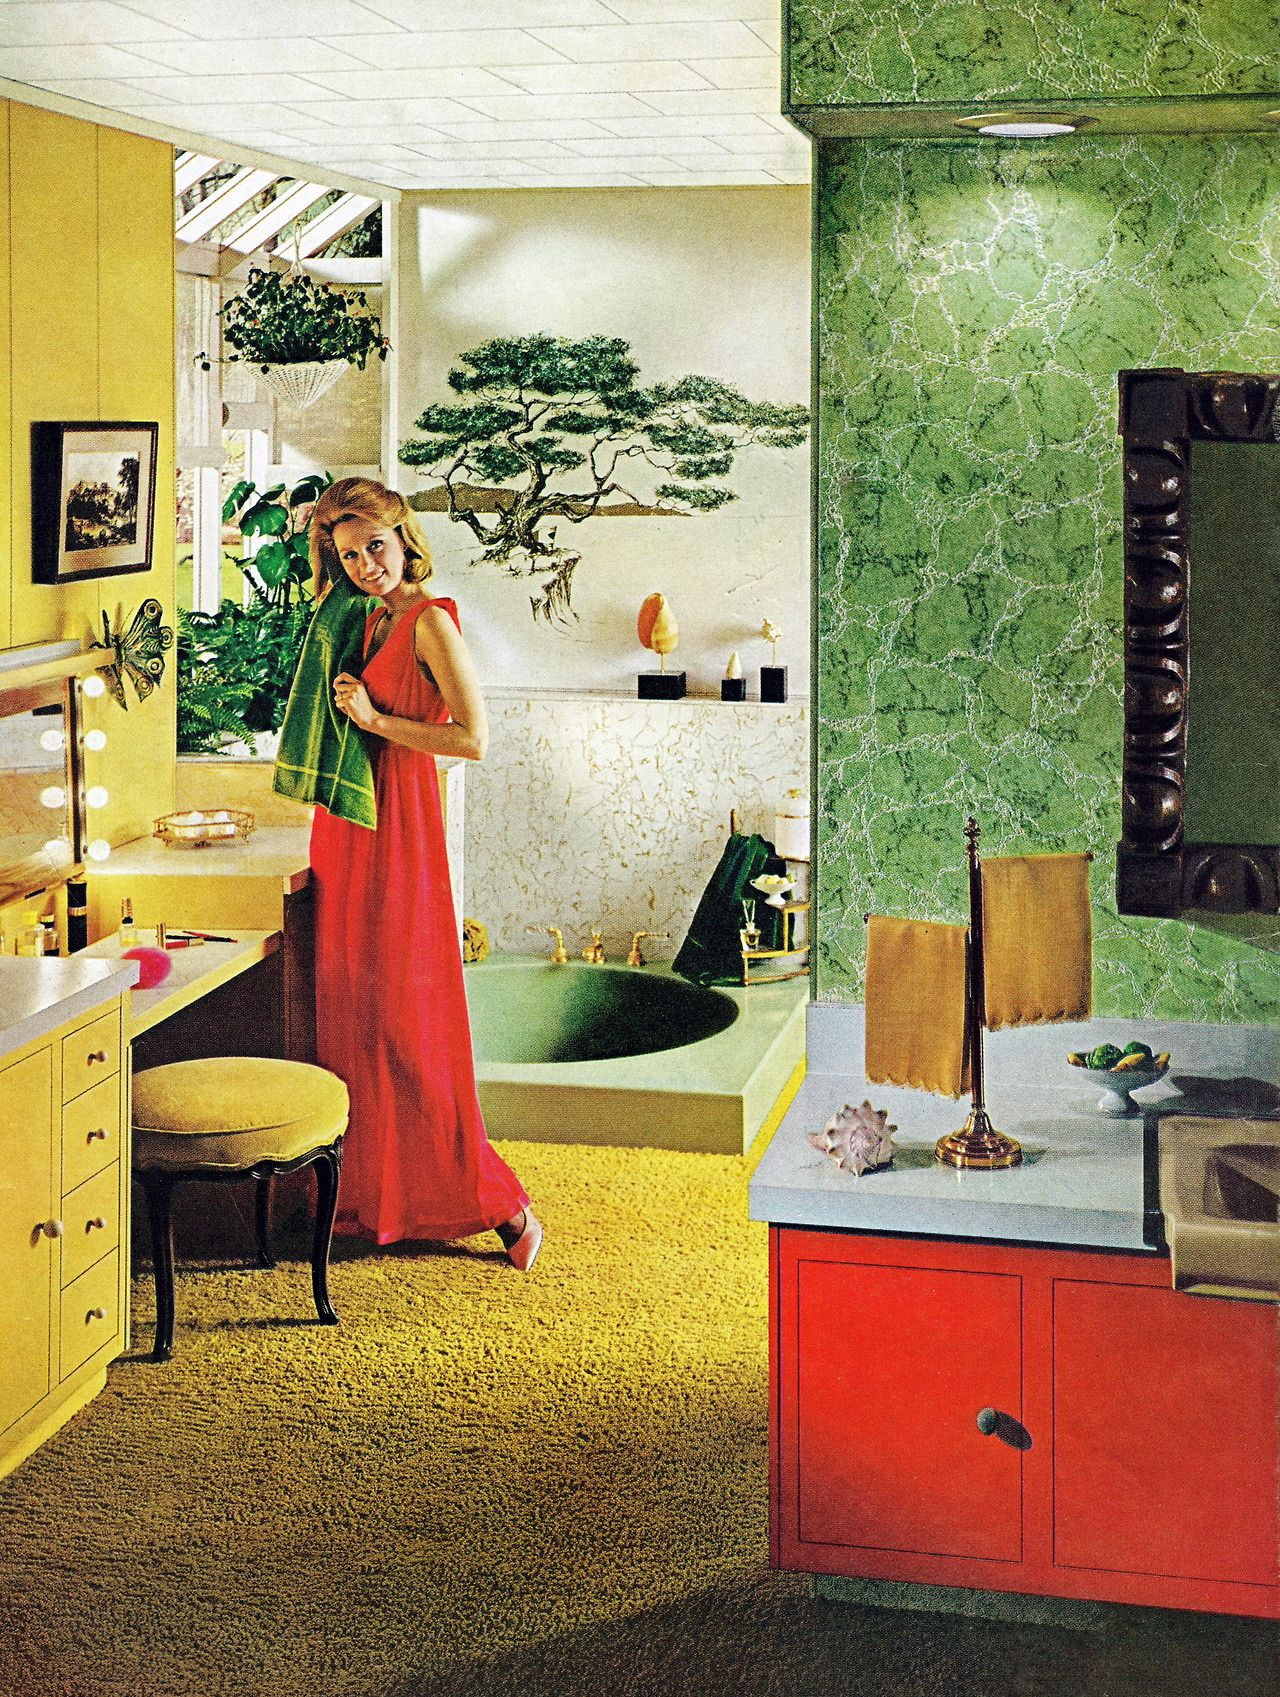 Bathroom Design From A Marlite Plastic Finished Paneling Ad 1970